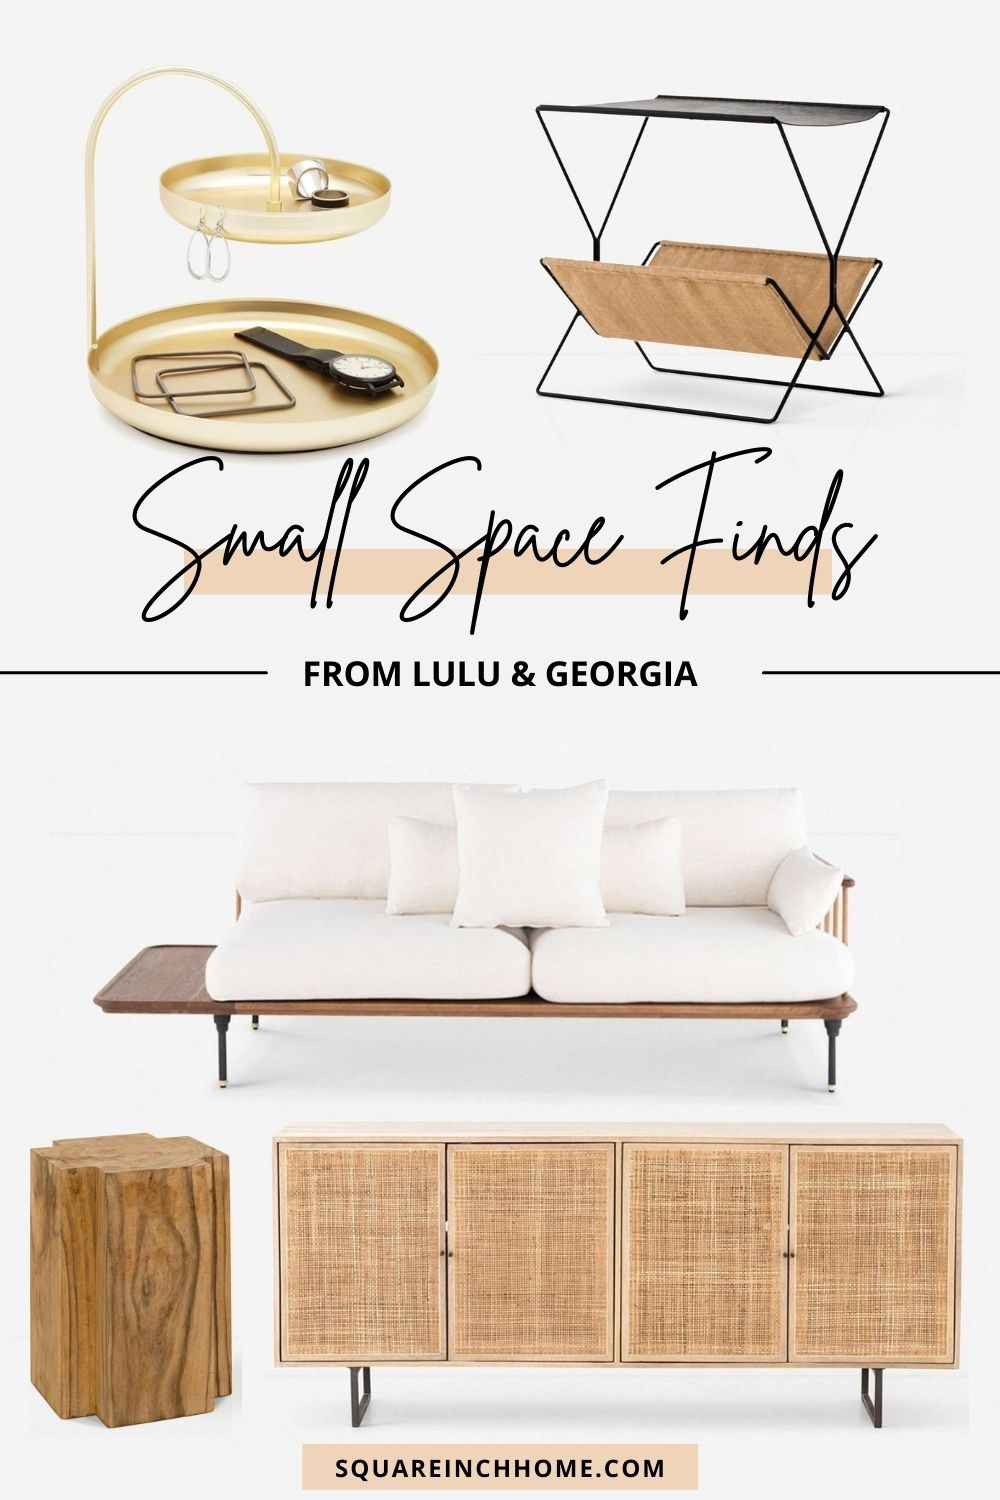 furniture for small spaces from lulu & georgia